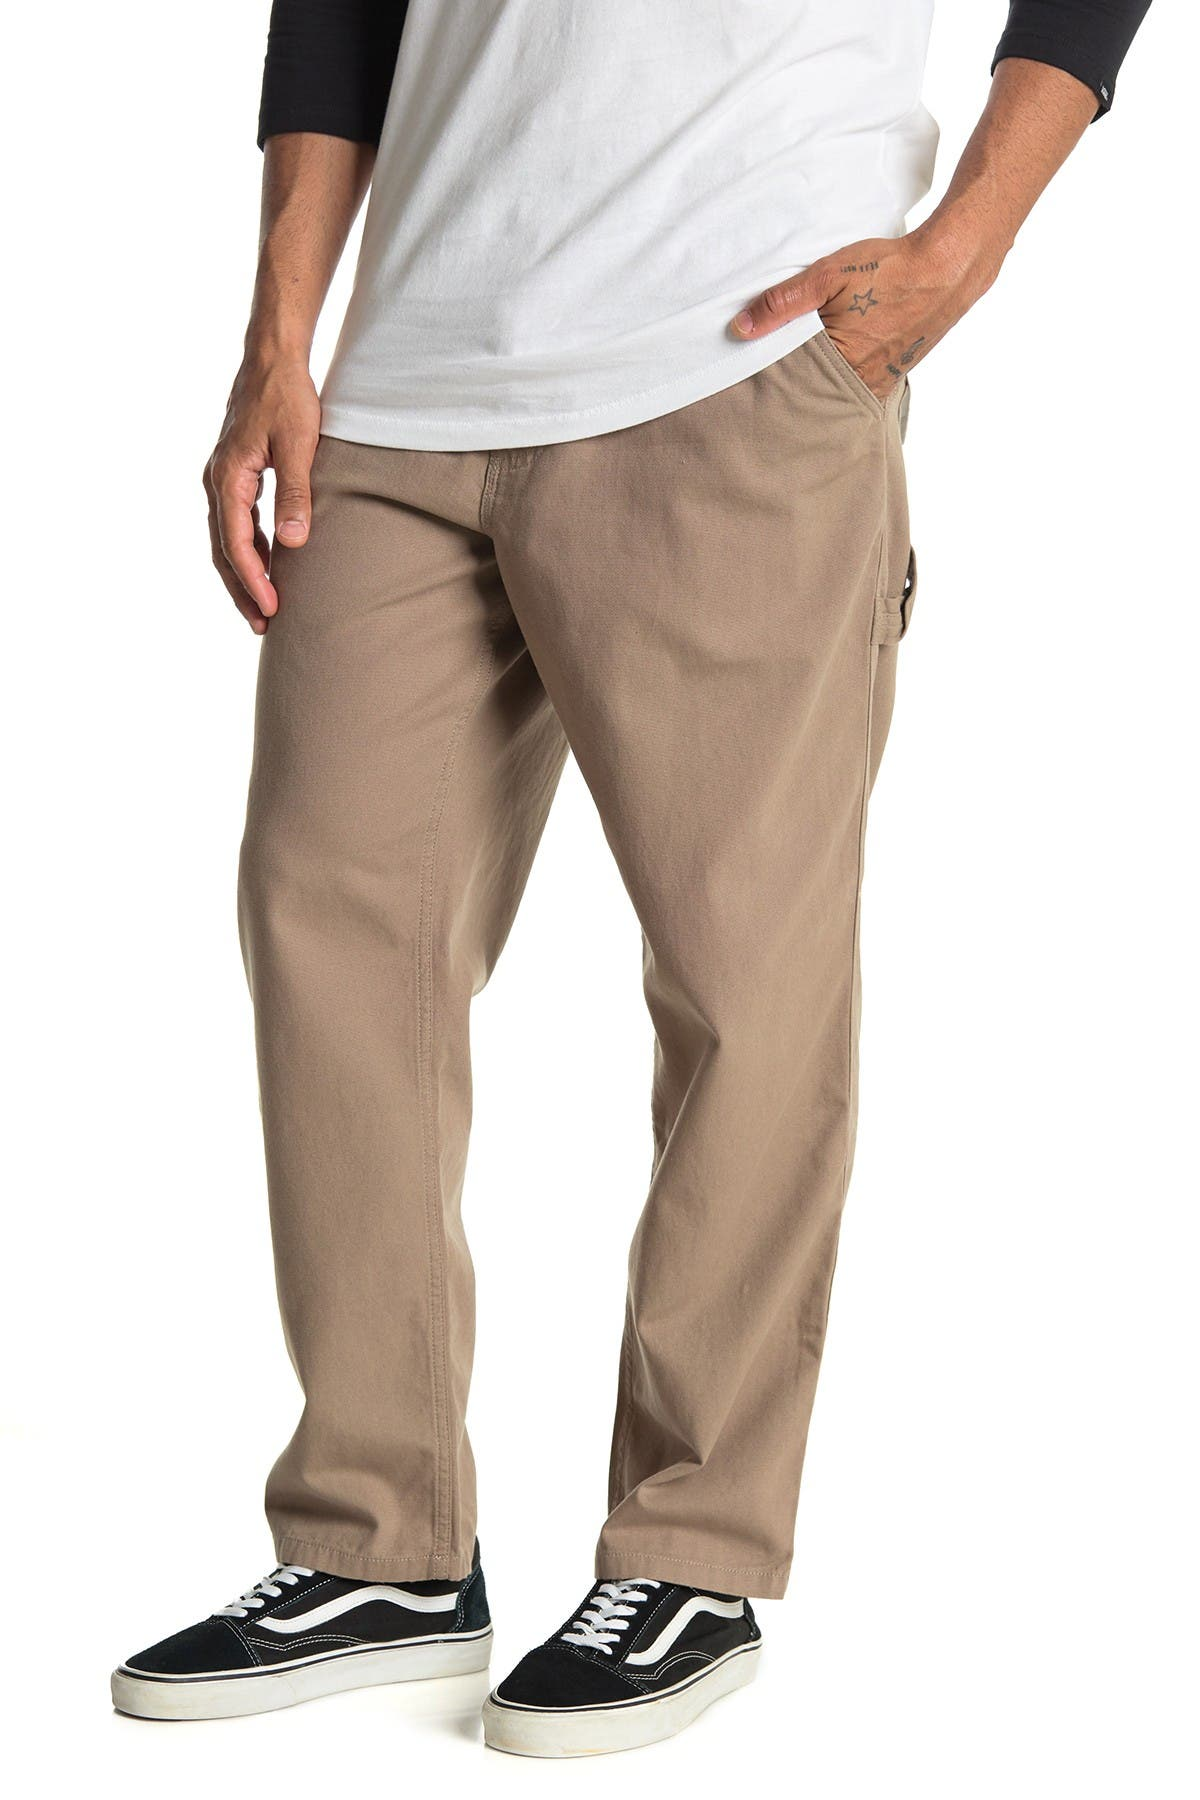 Image of VANS Municiple Military Khaki Pants